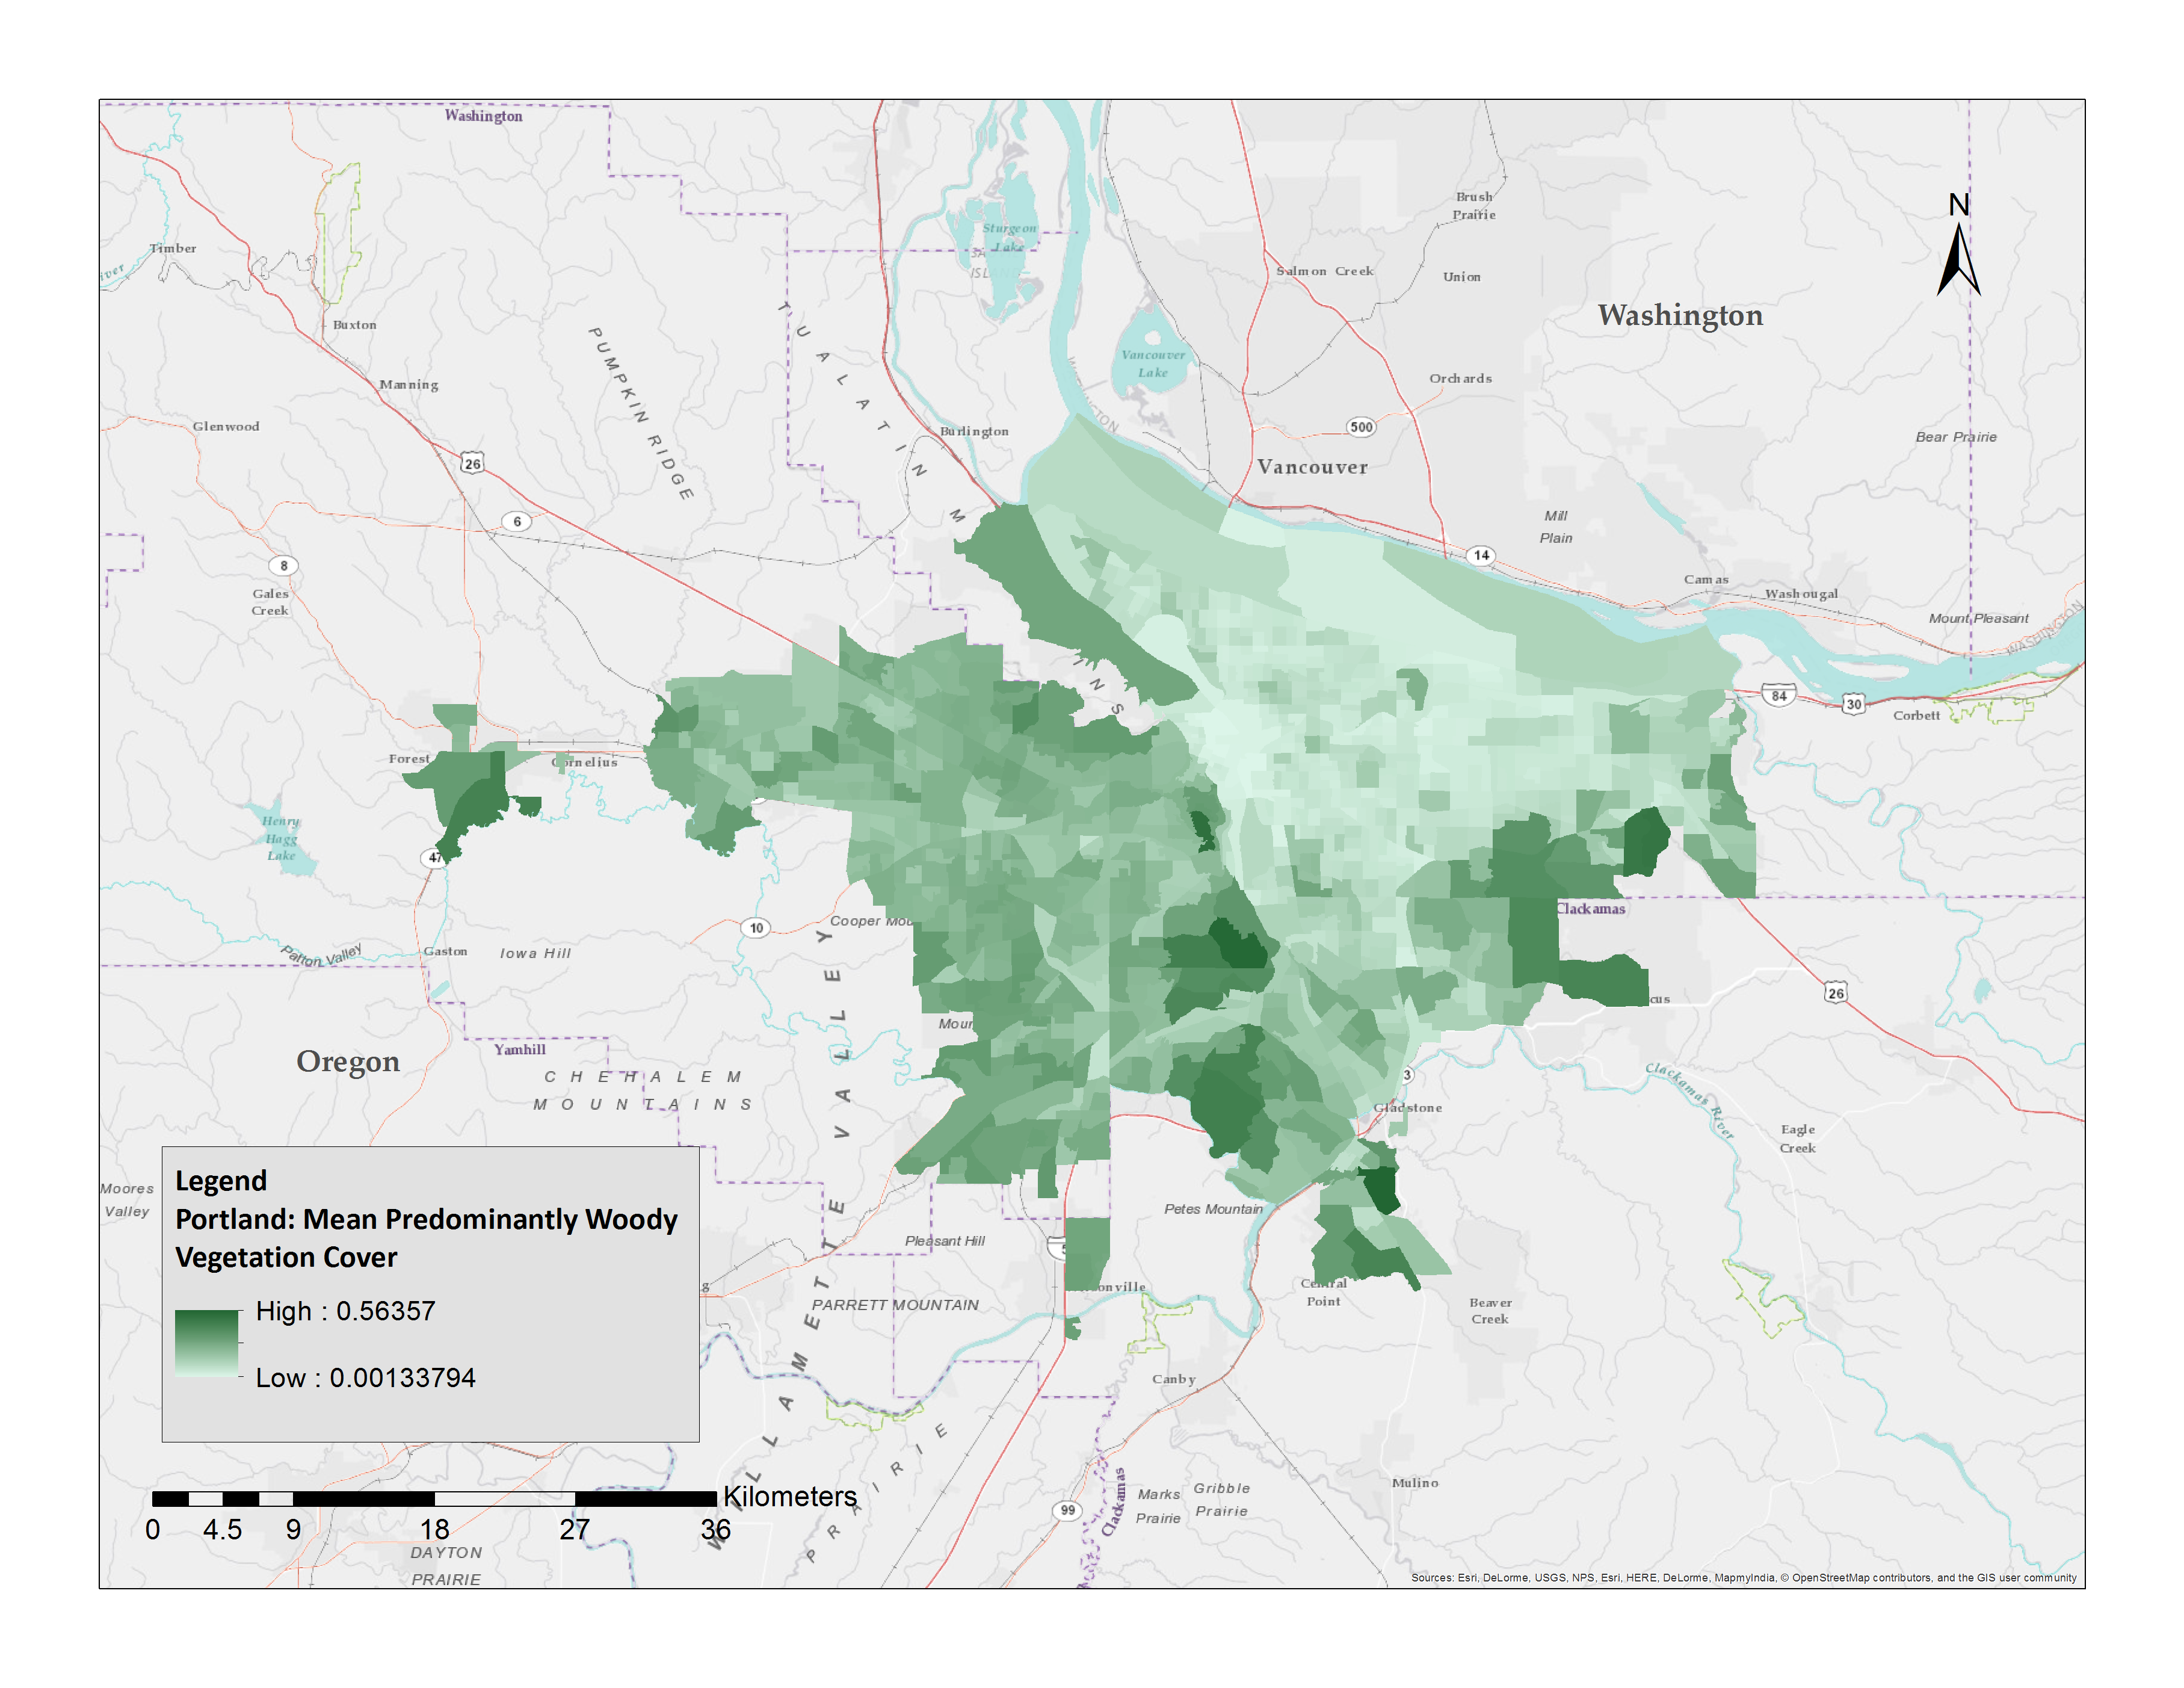 Aerial imagery and census data are used to map urban green inequity in metro areas.